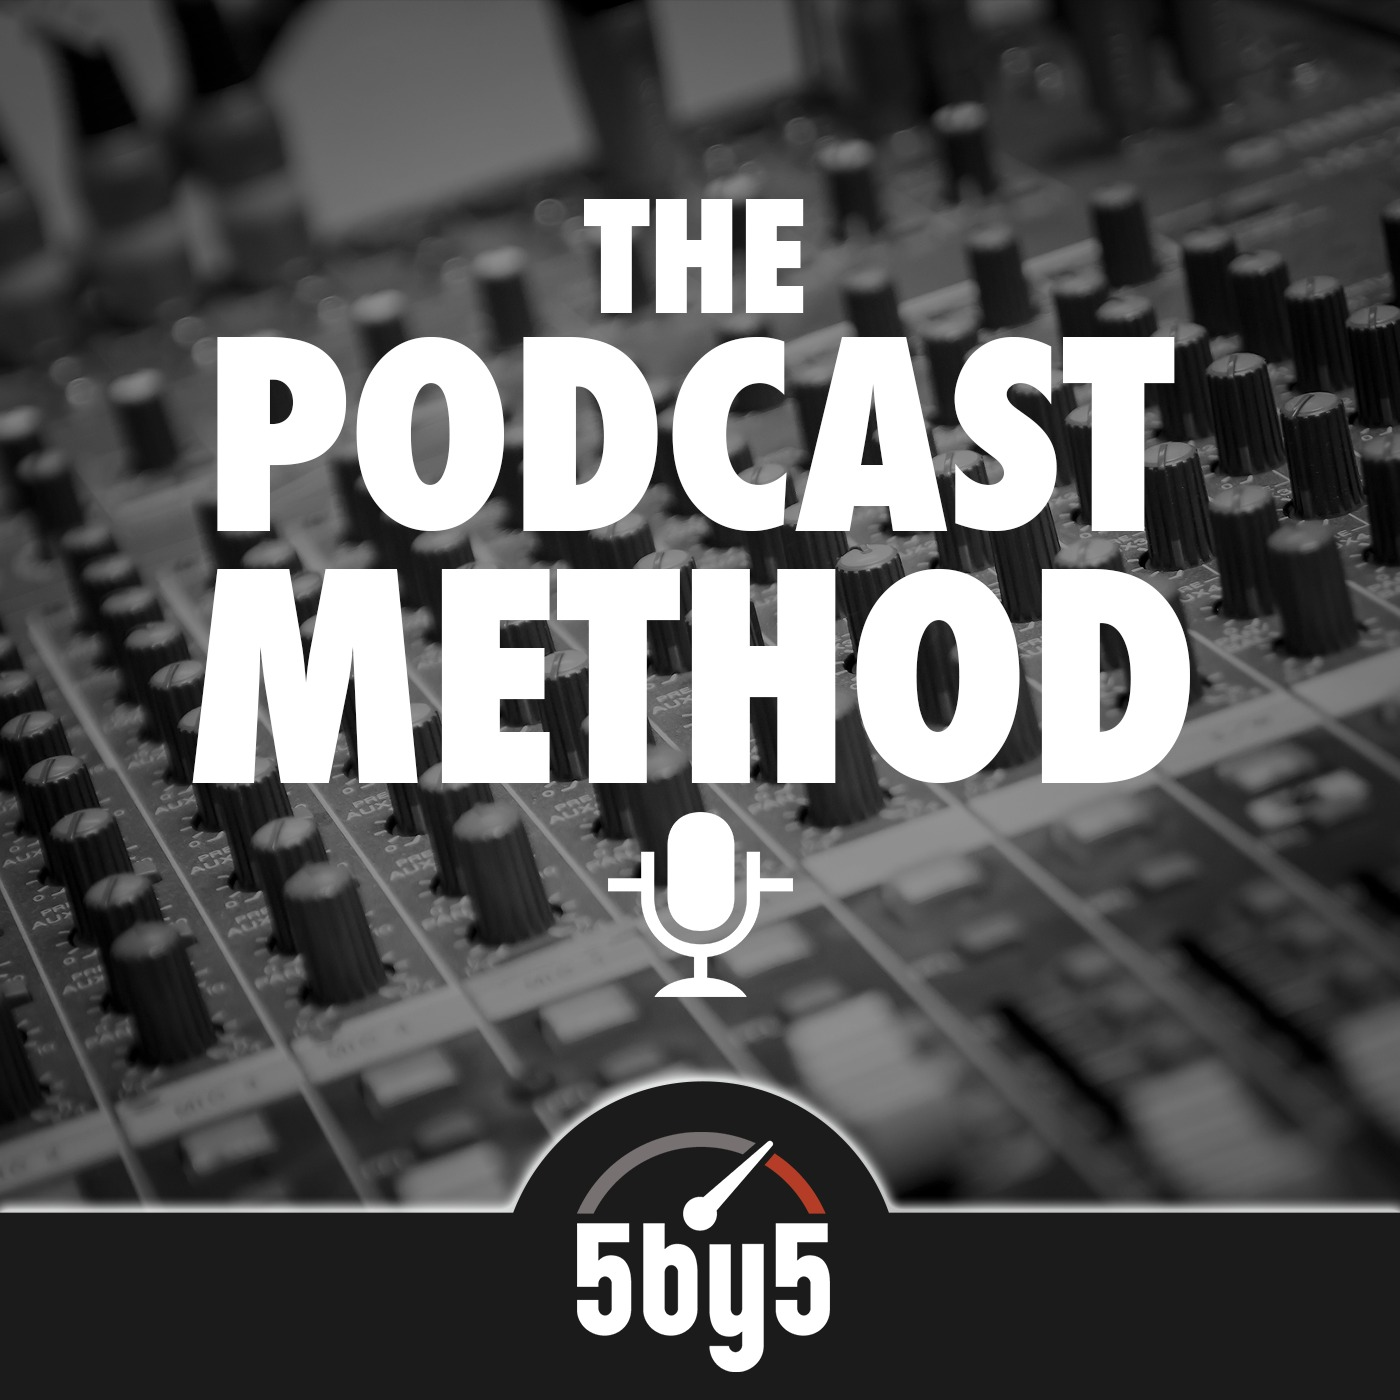 Podcast Method